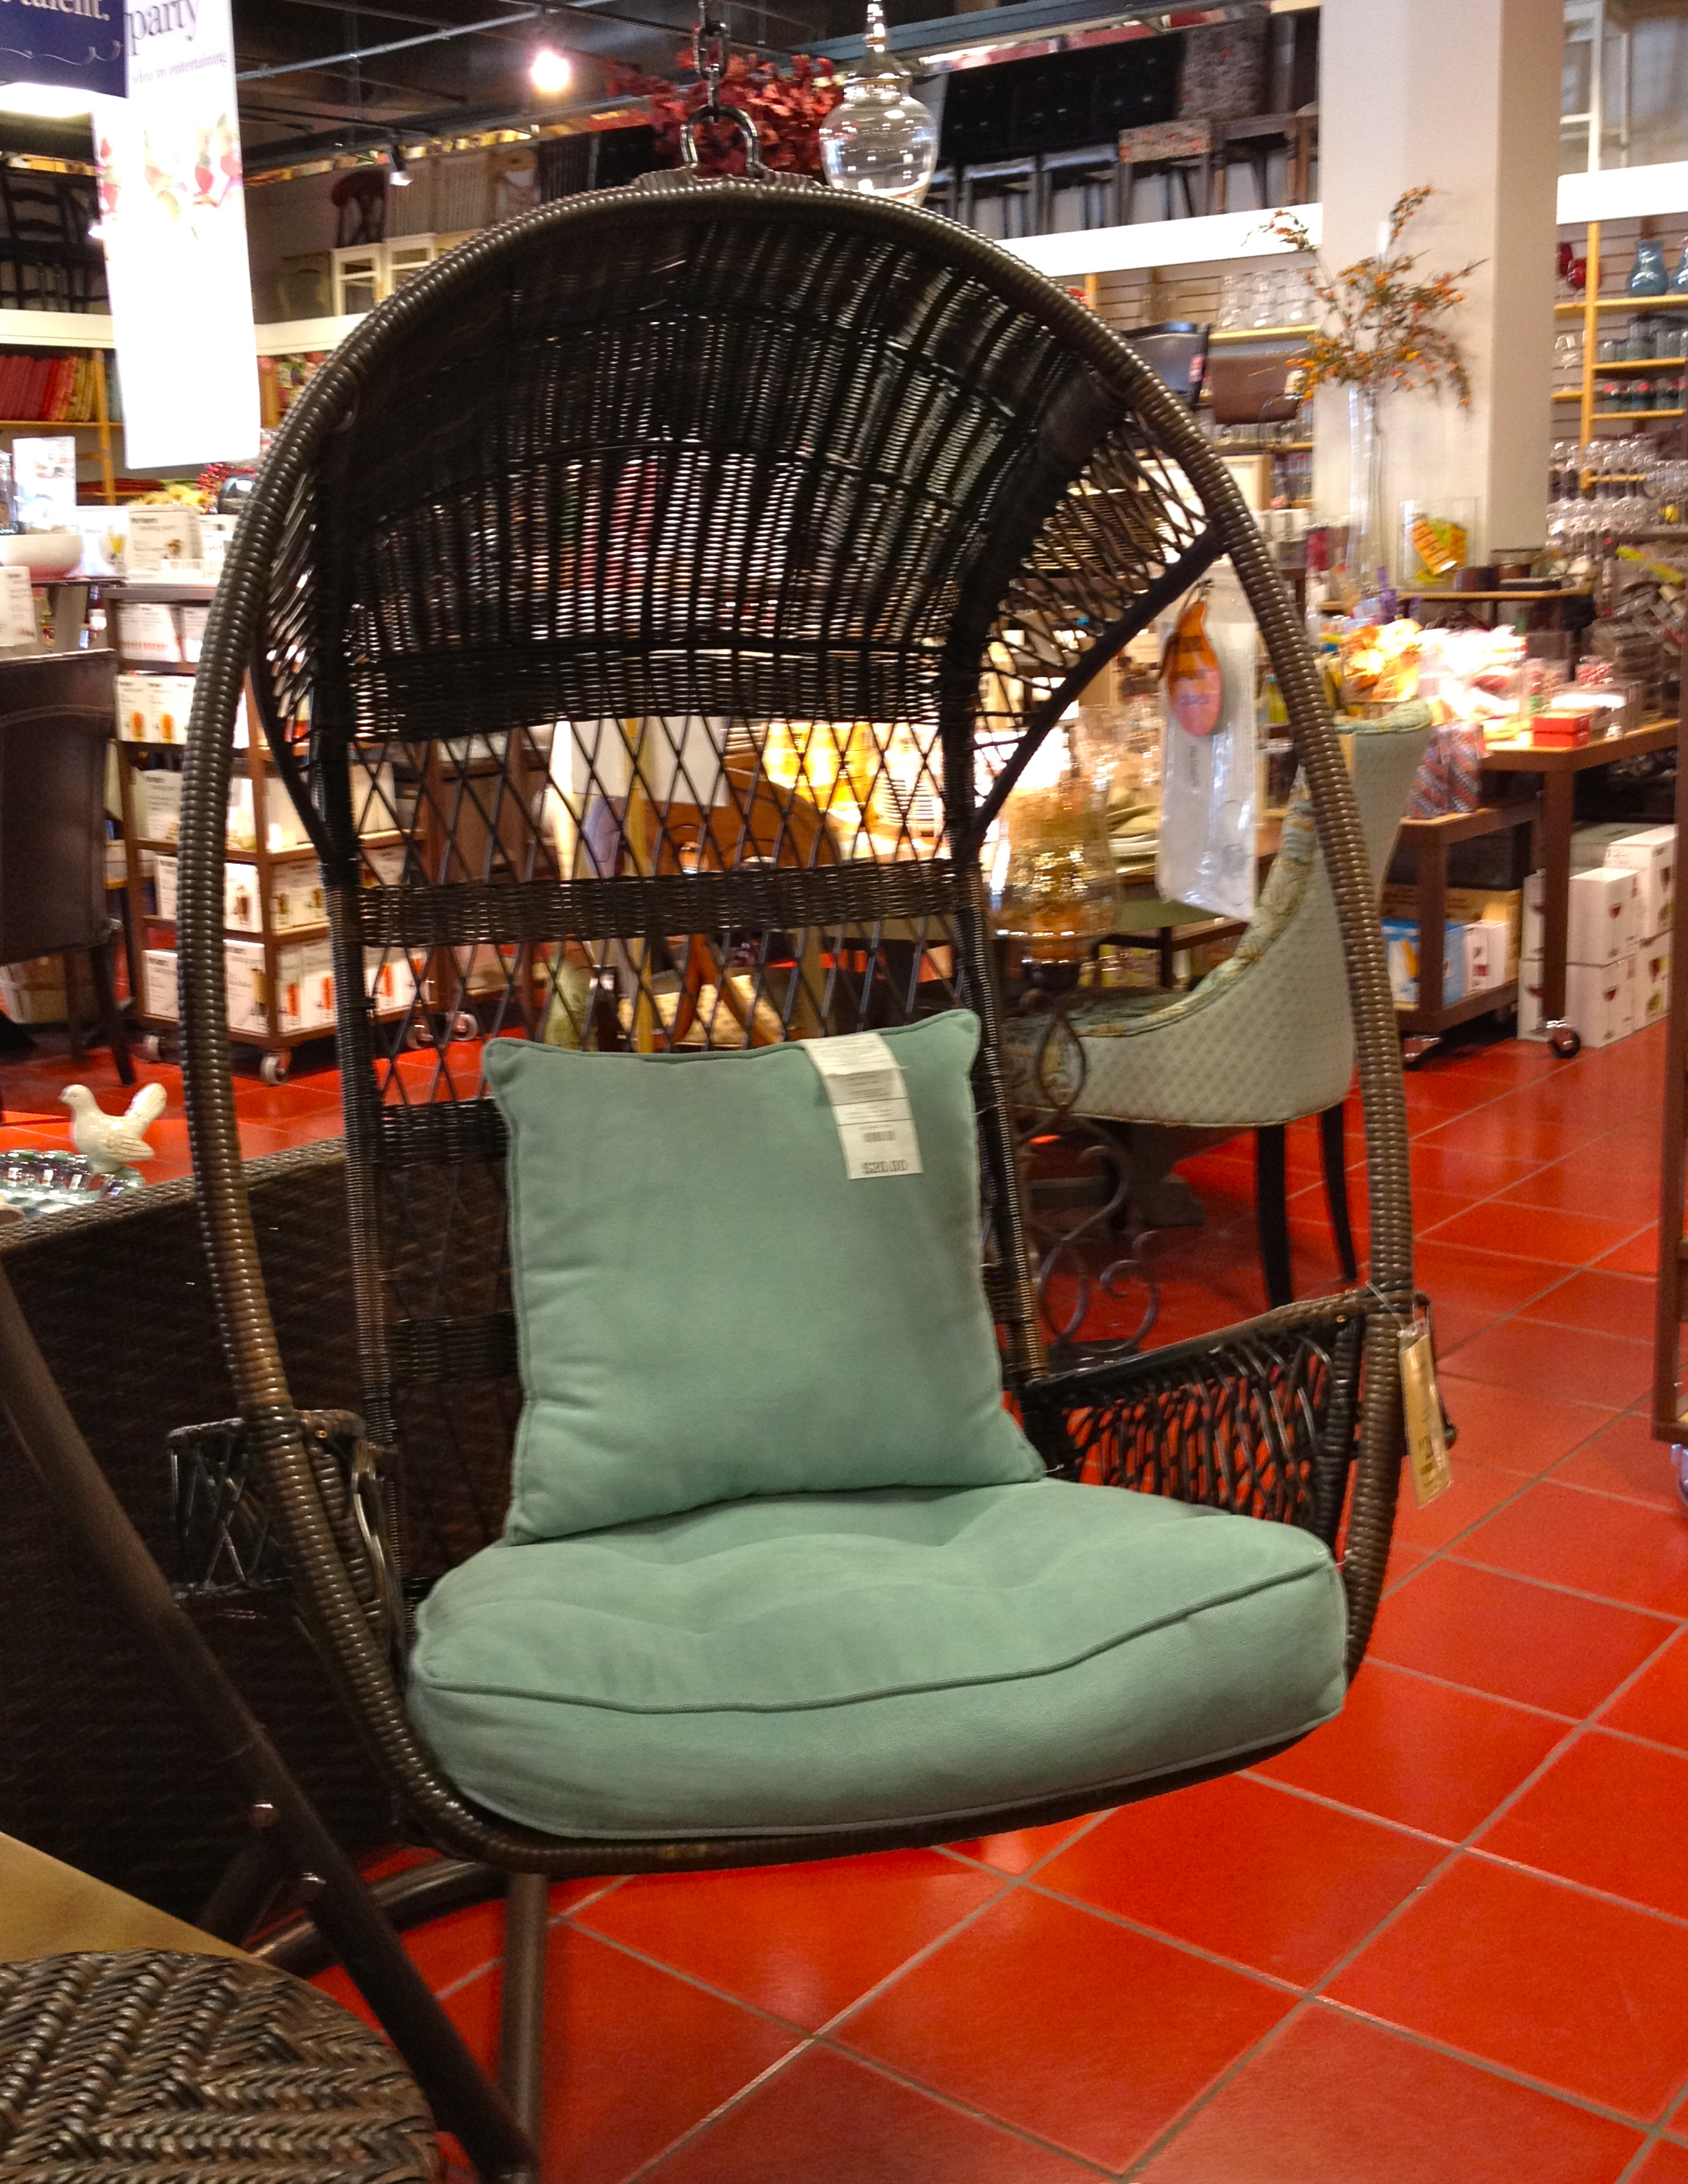 Fabulous finds left behind susy home maker - Pier one lounge chairs ...